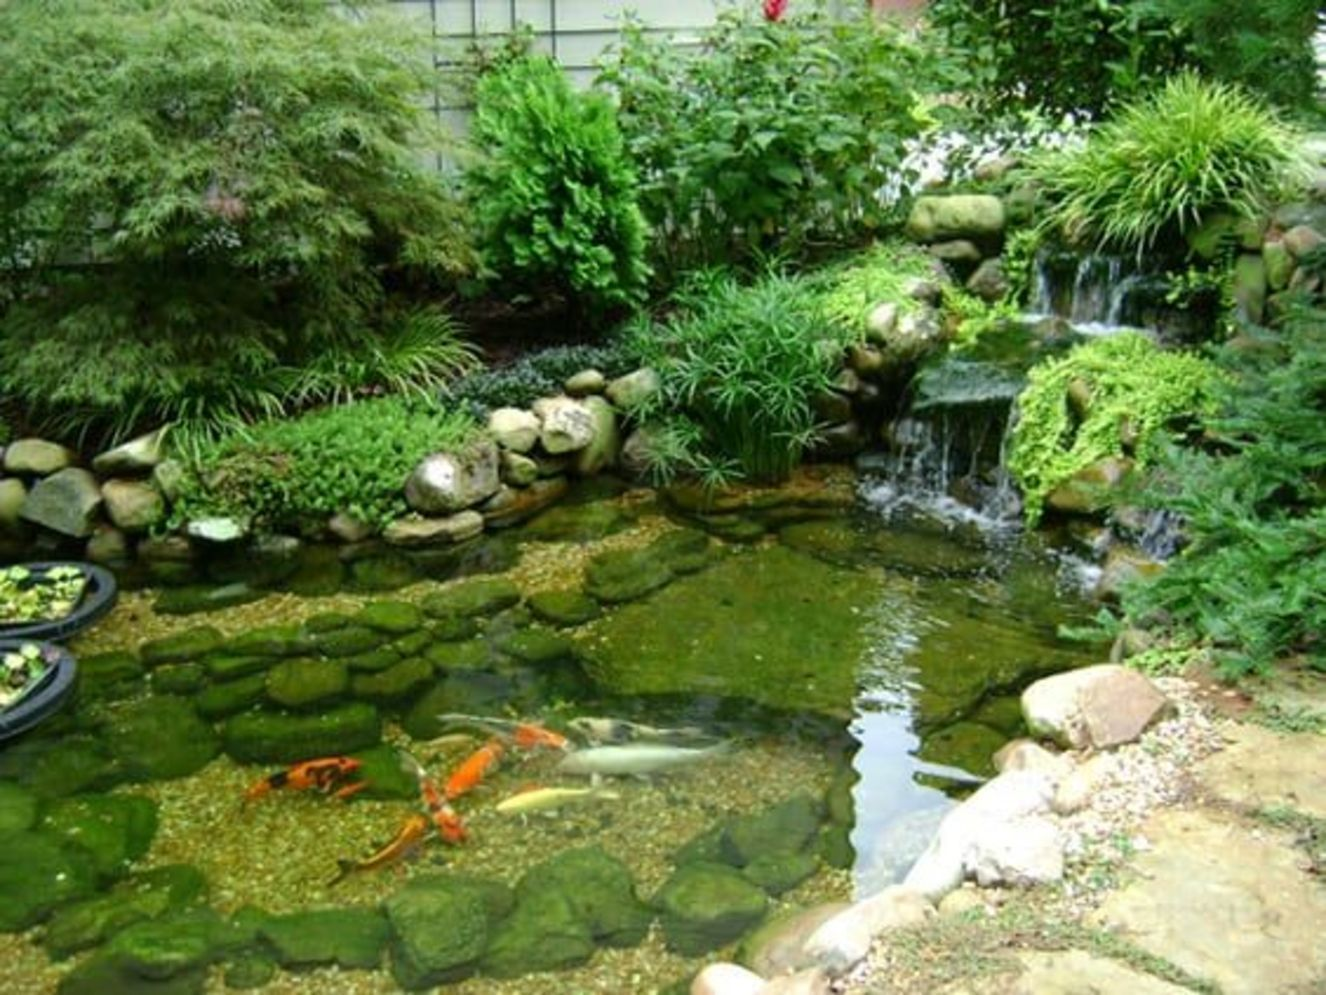 More Diy Pond Fish Projects The Same Temperature During The Winter So It Would Be Recommended The Pond To Be Ke In 2020 Fish Pond Gardens Koi Pond Design